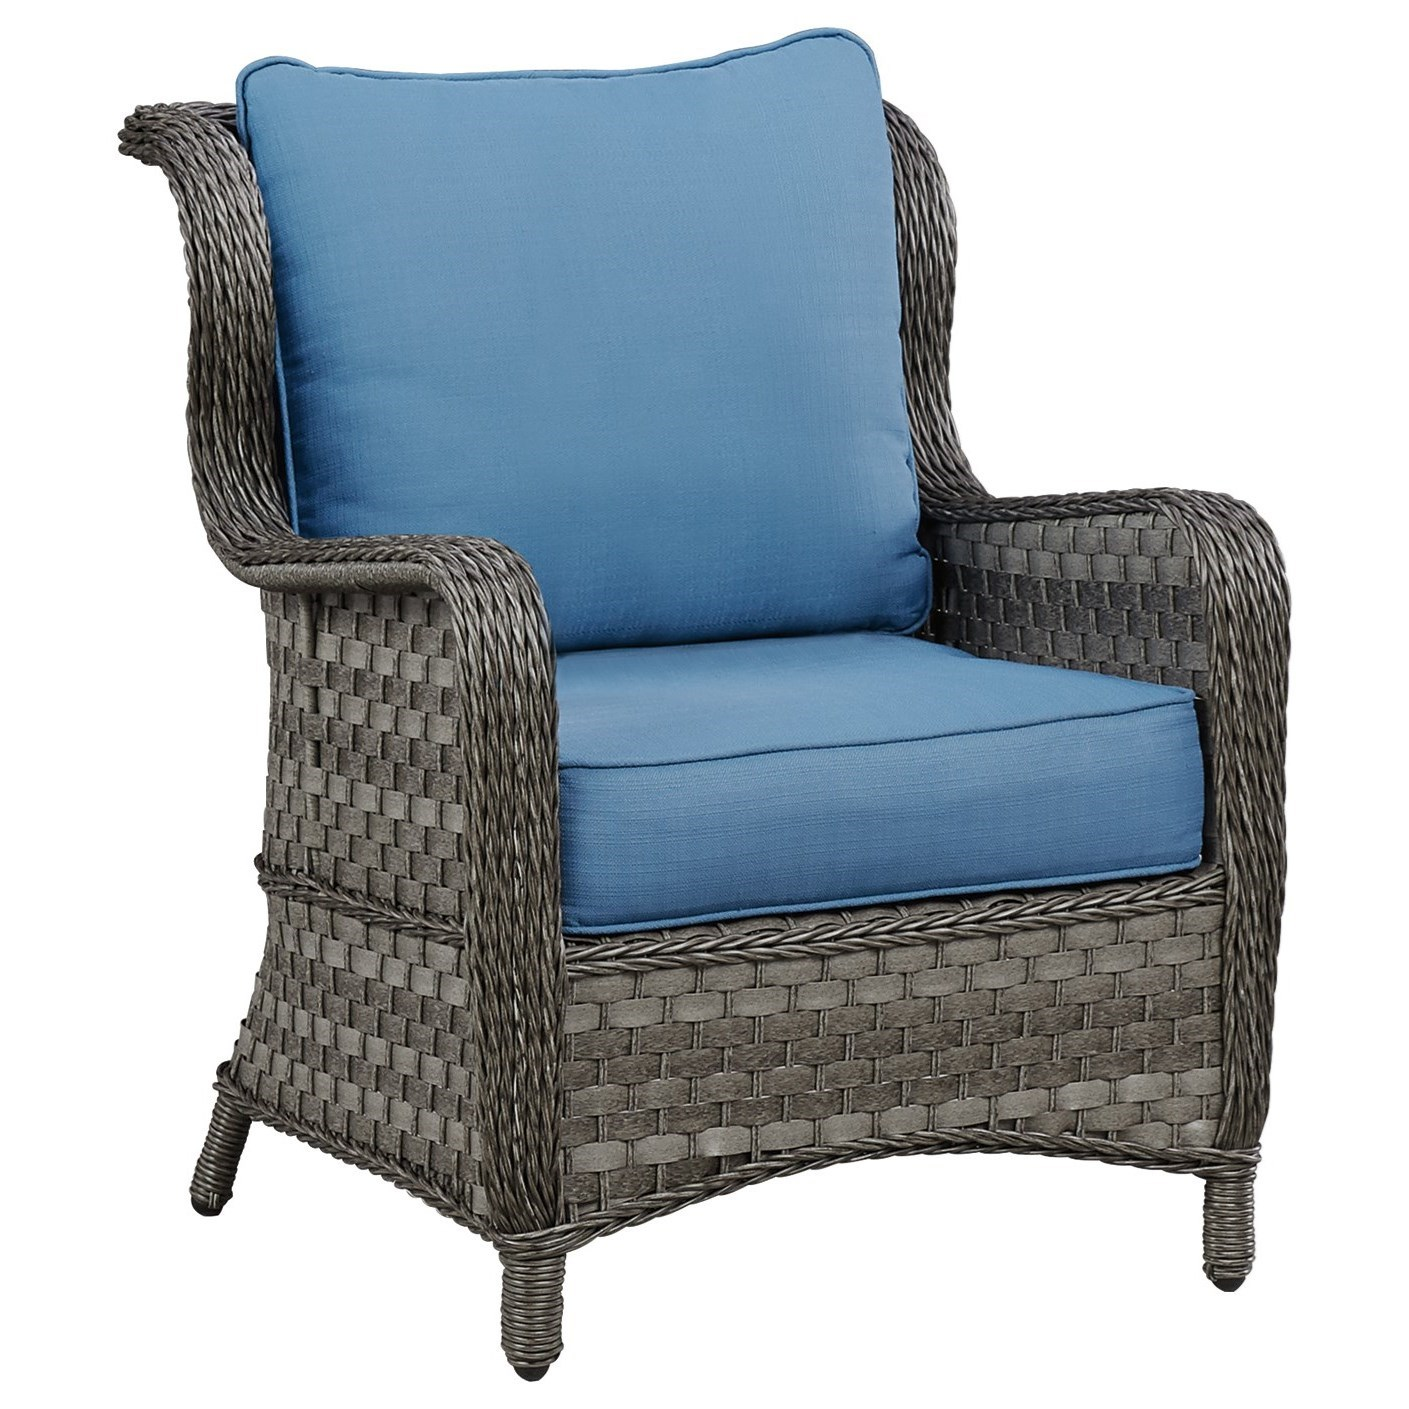 design chair outdoor velvet covers ebay signature by ashley abbots court p360 820 c